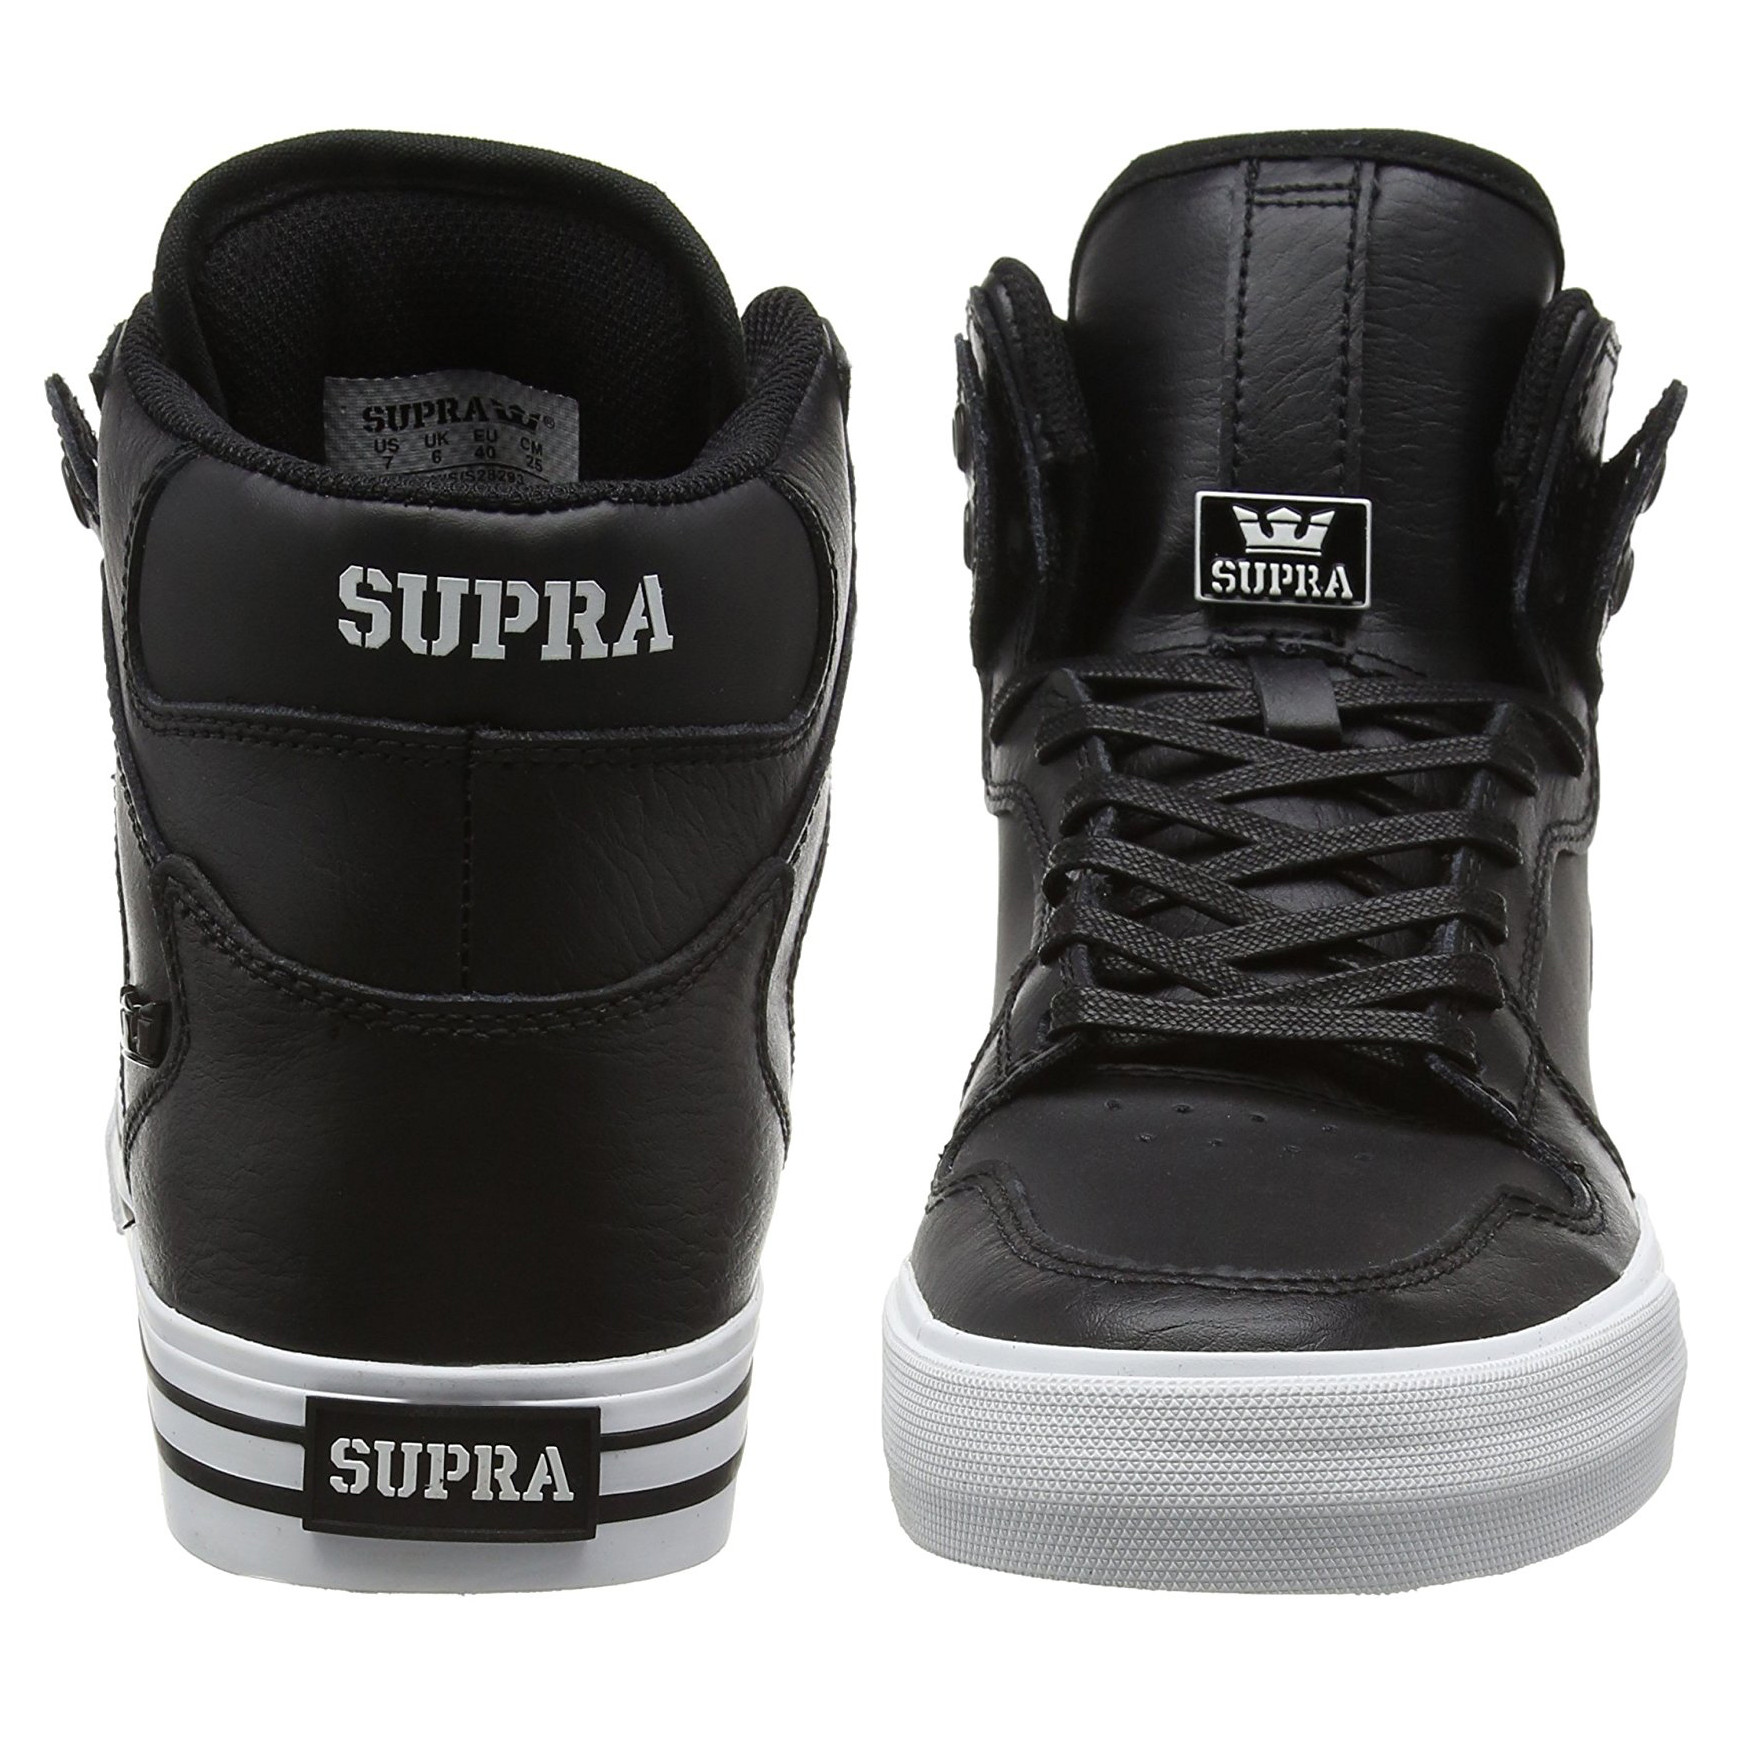 7a993c3a0402 SUPRA Men s Vaider Leather Shoes Trainers Black White